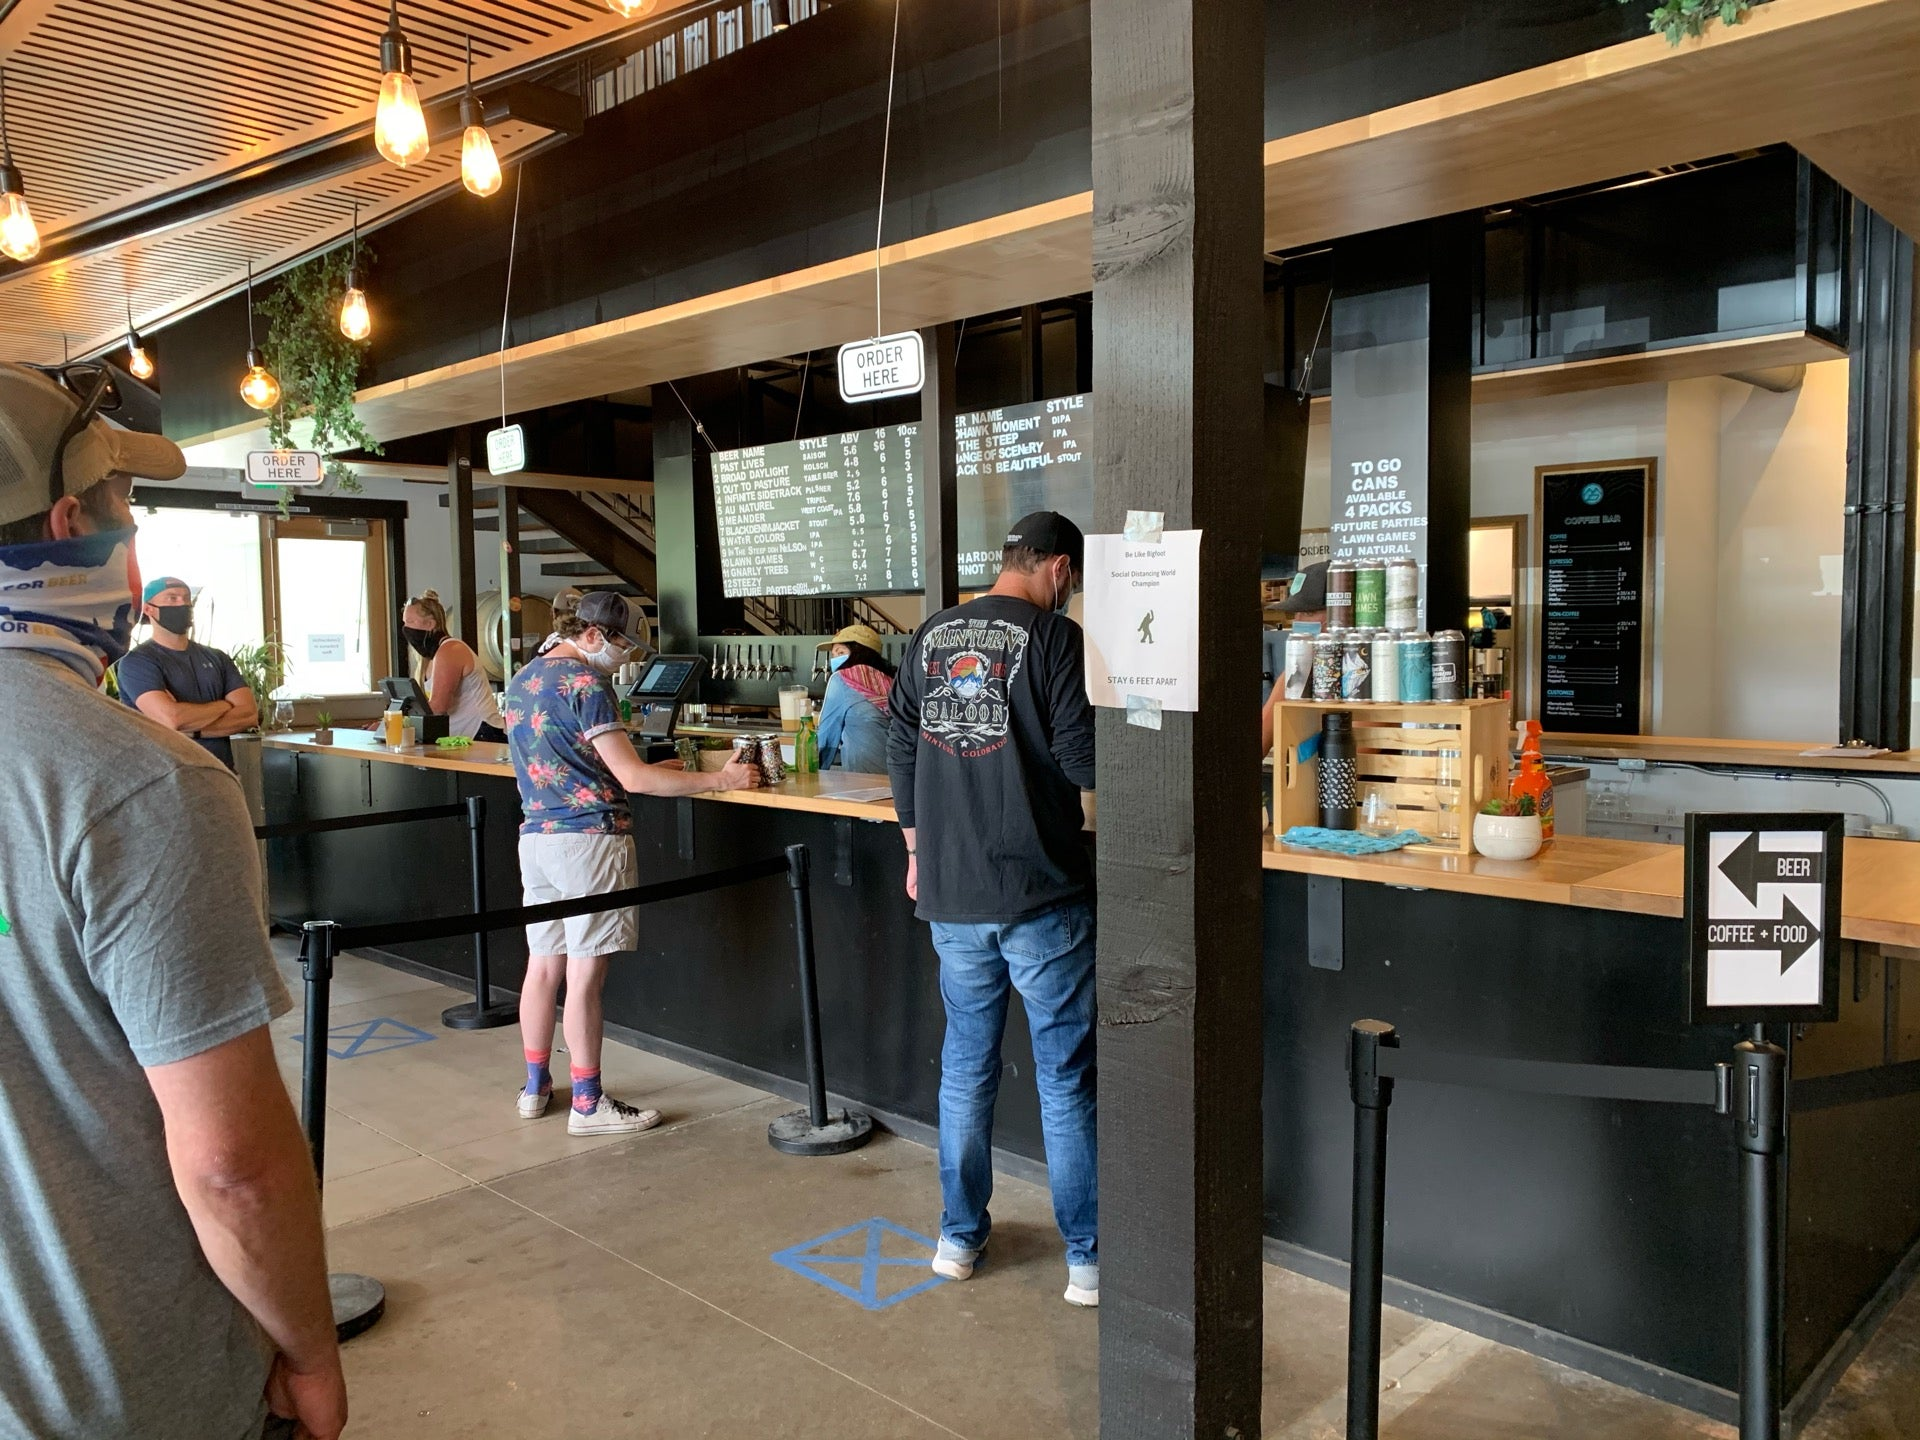 Checked in at Outer Range Brewing